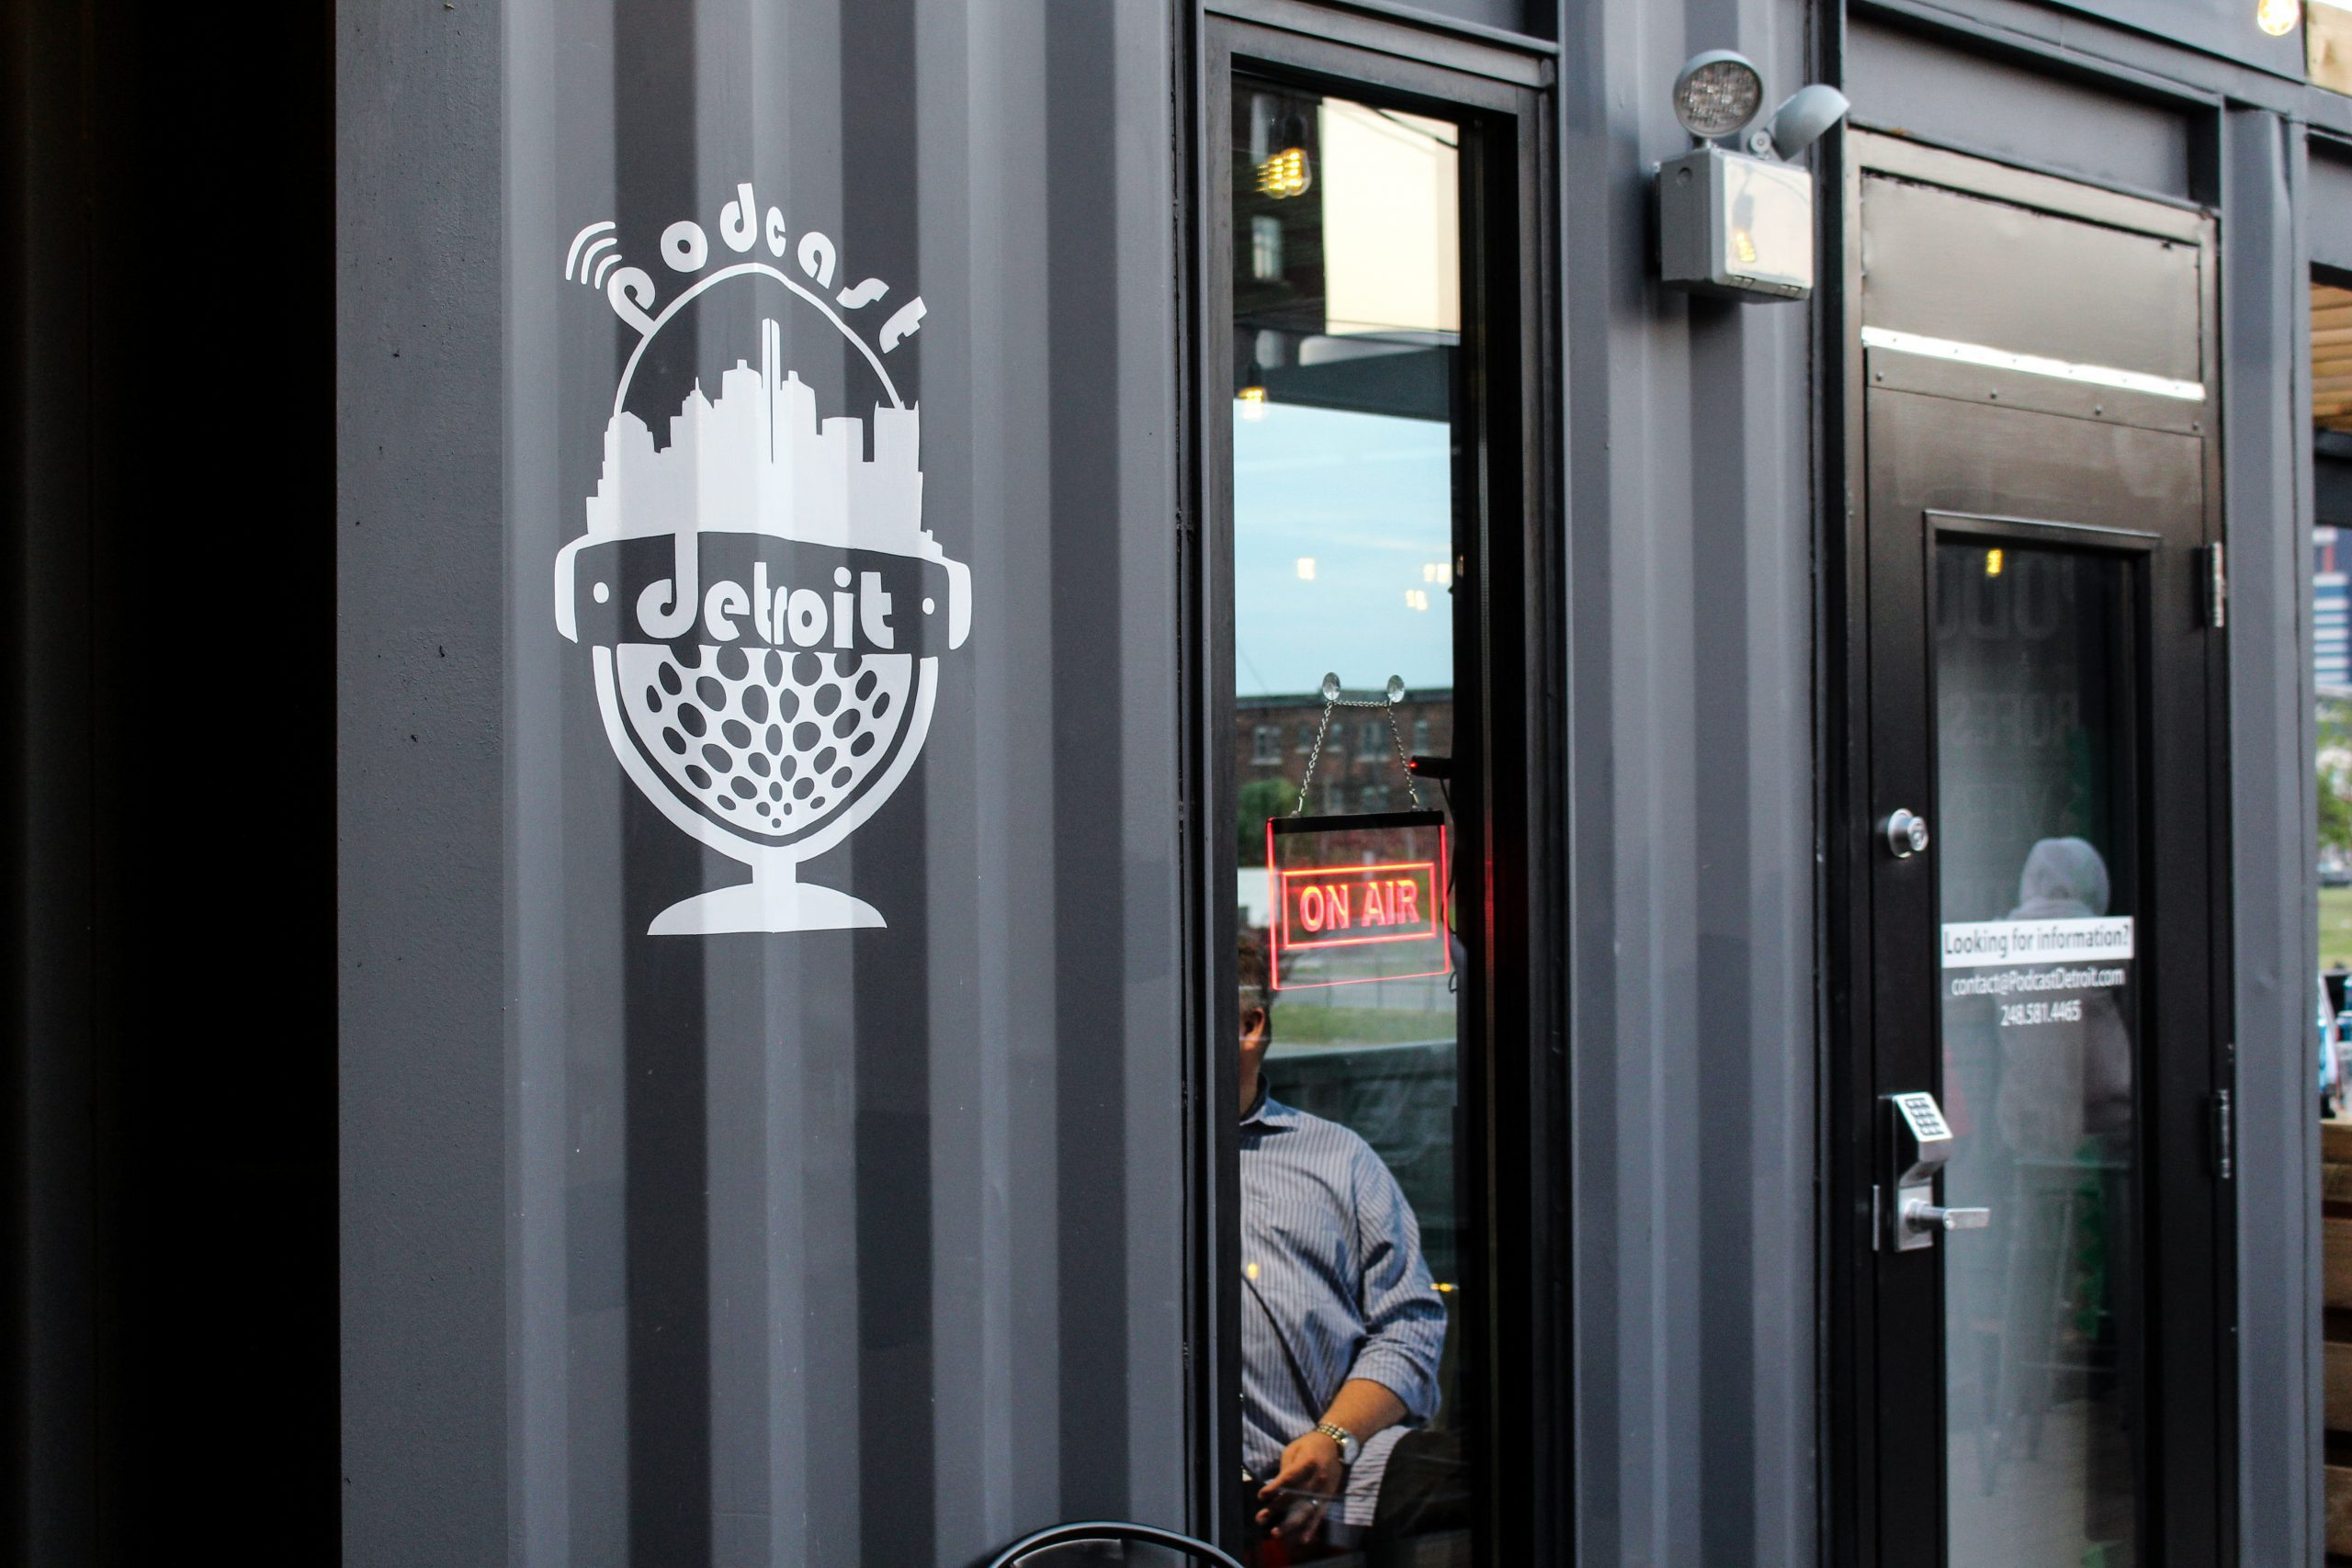 Podcast Detroit - Detroit Shipping Co - Grand Opening